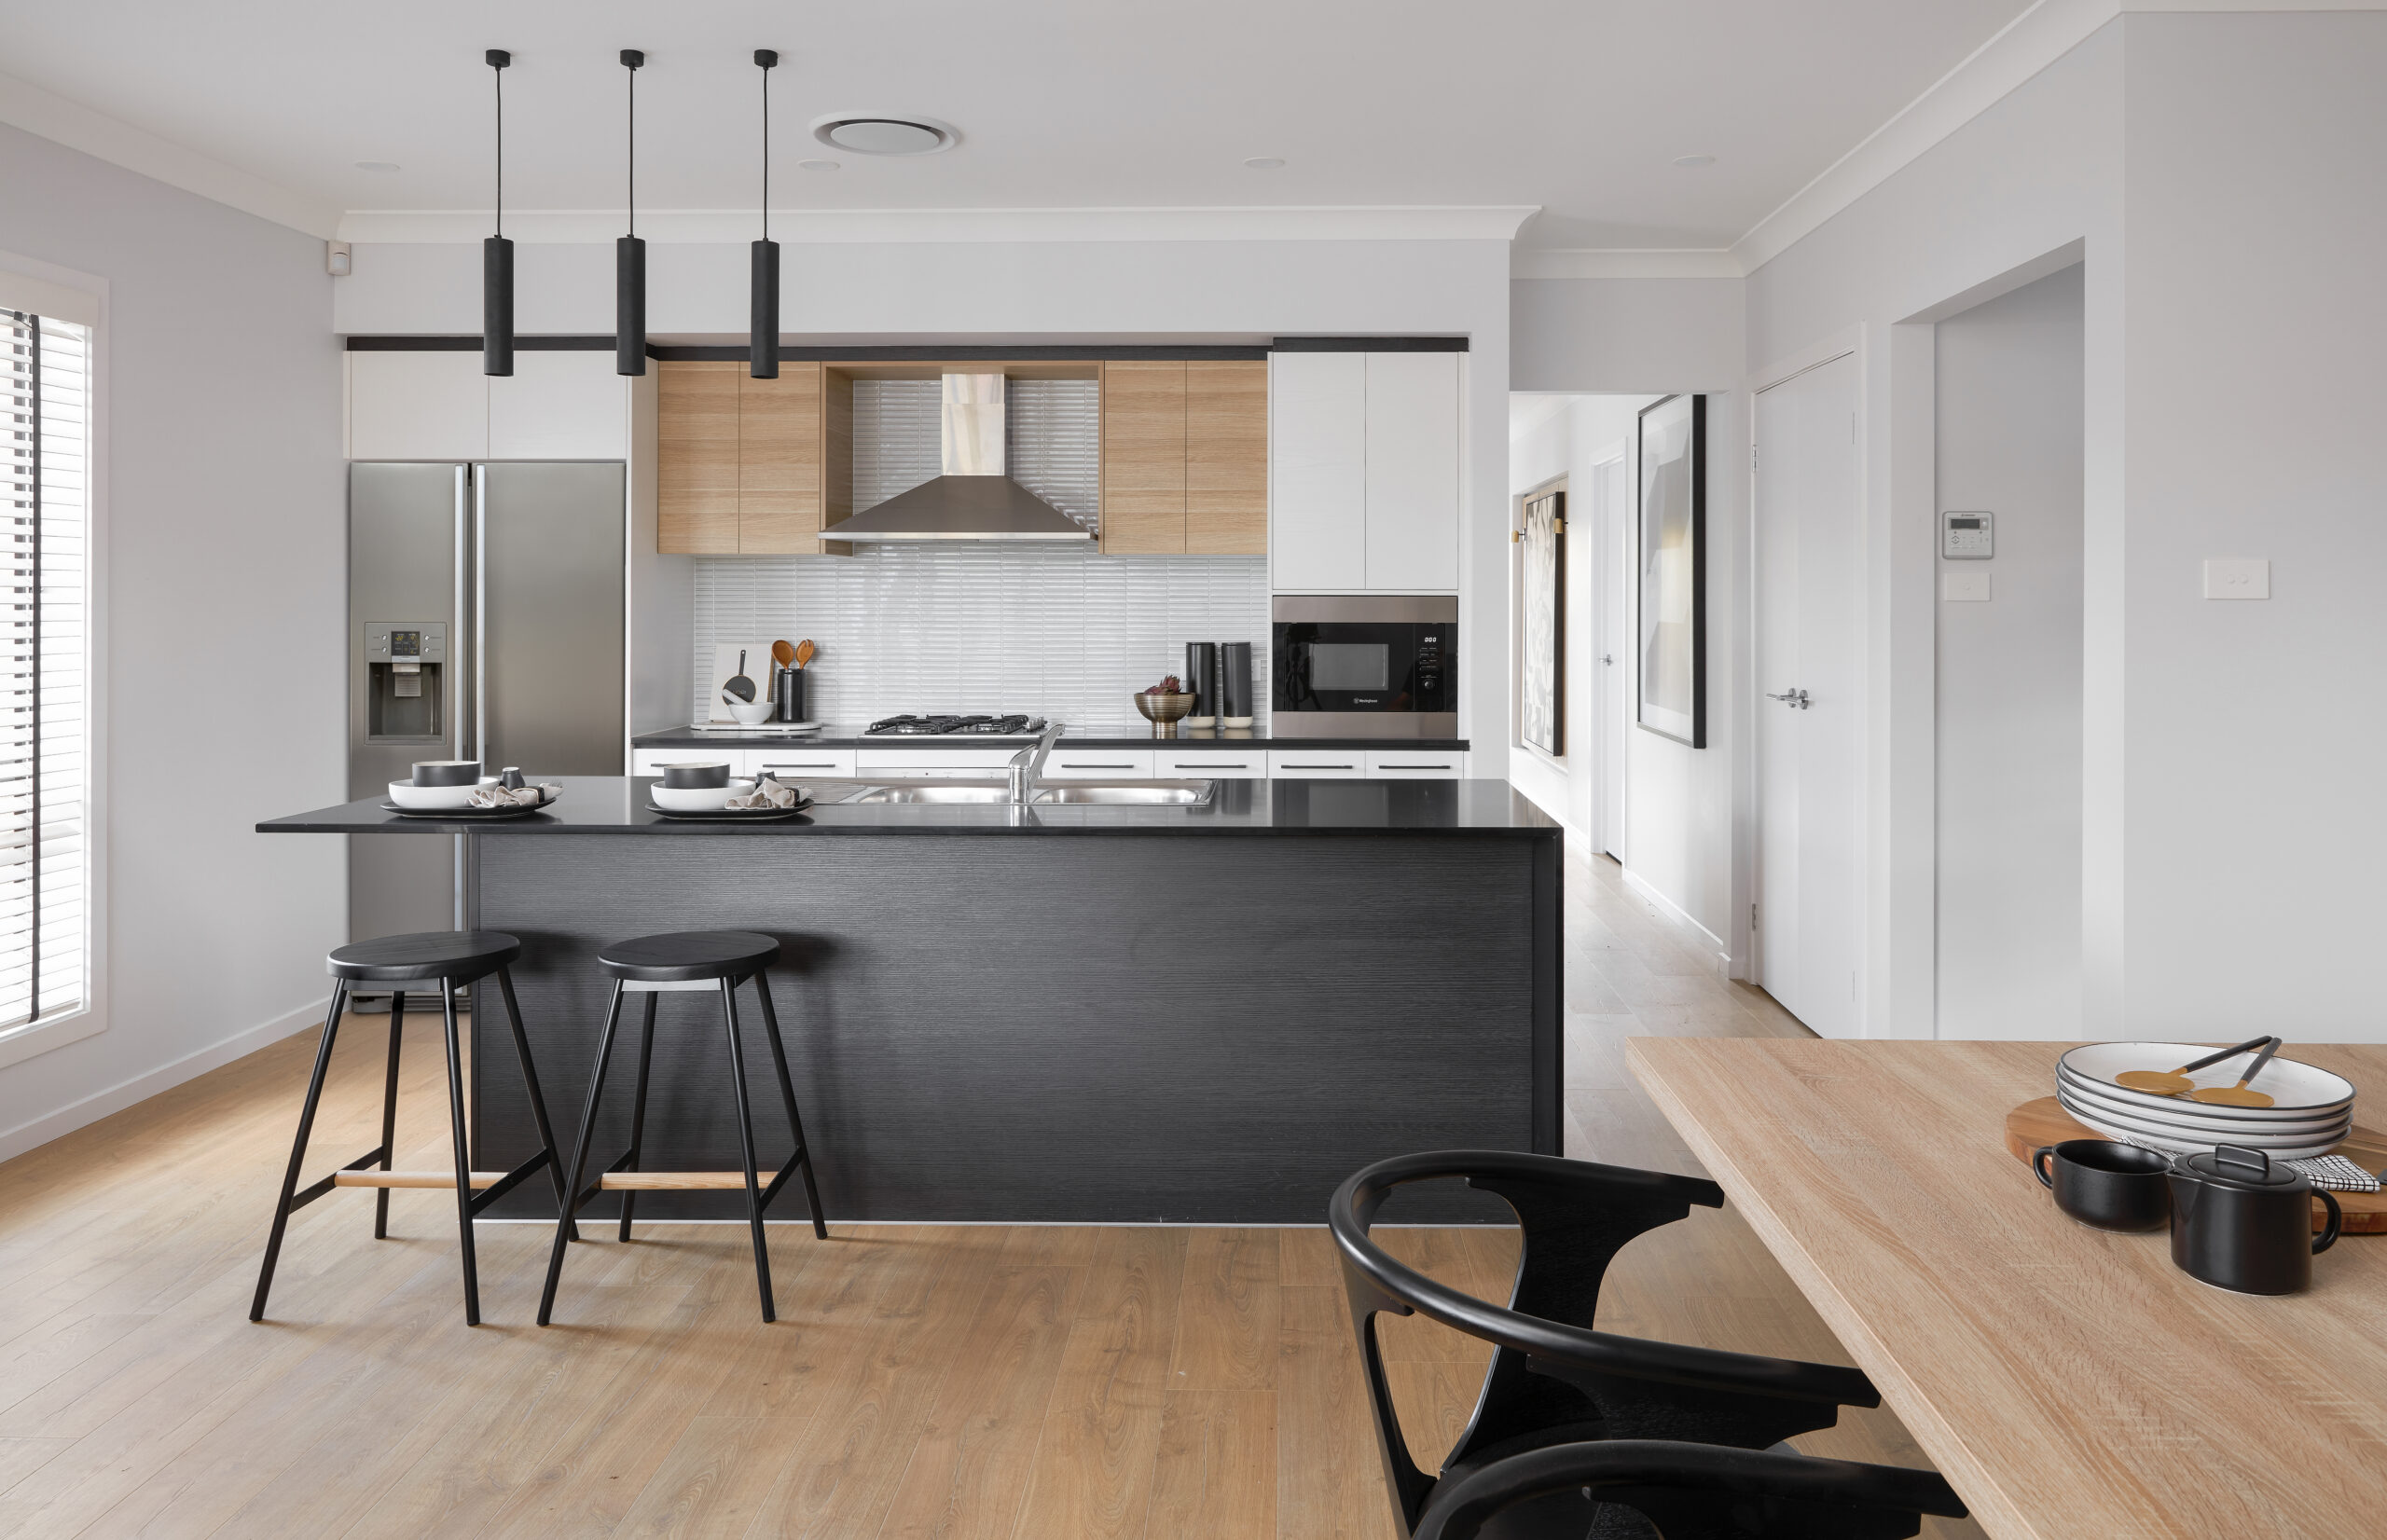 The kitchen of the Bayswater 20 floorplan by Bellriver Homes in Aastral